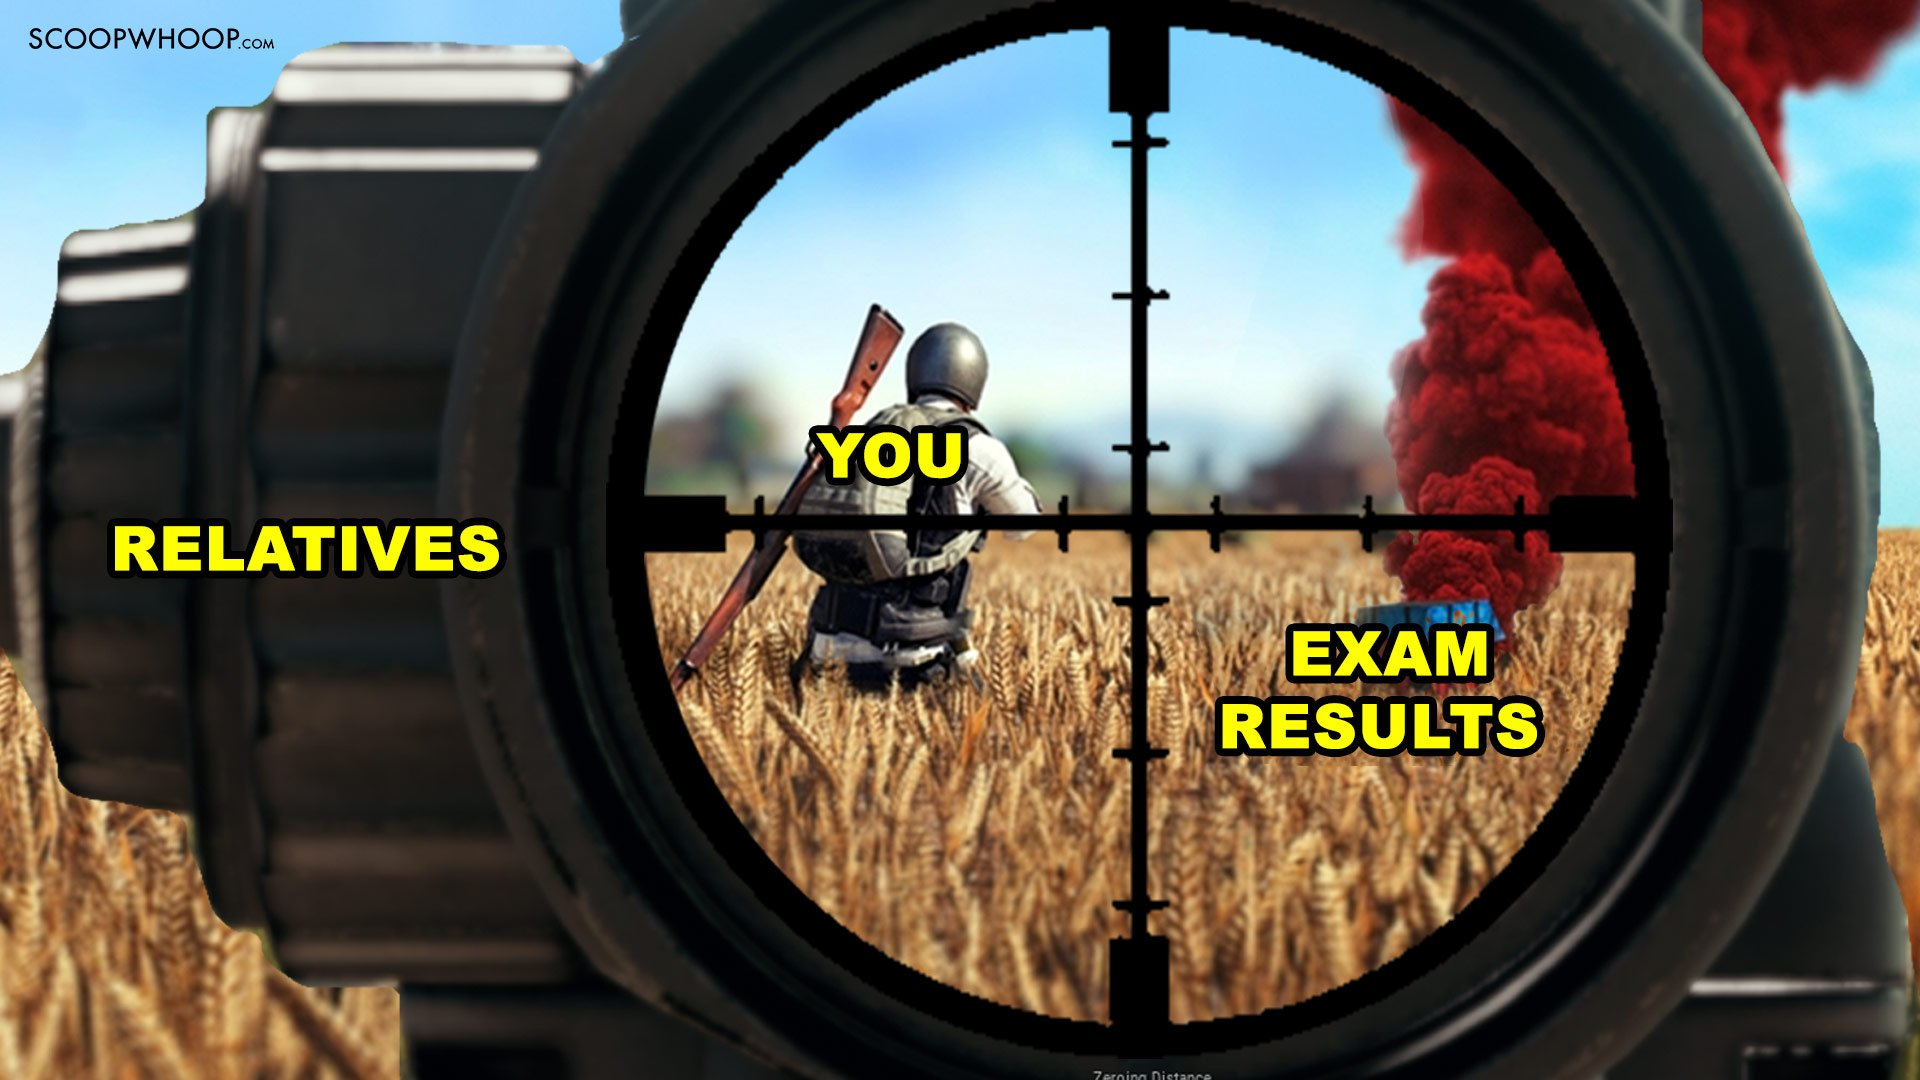 14 Desi-Style PUBG Memes That Are Way Too Real